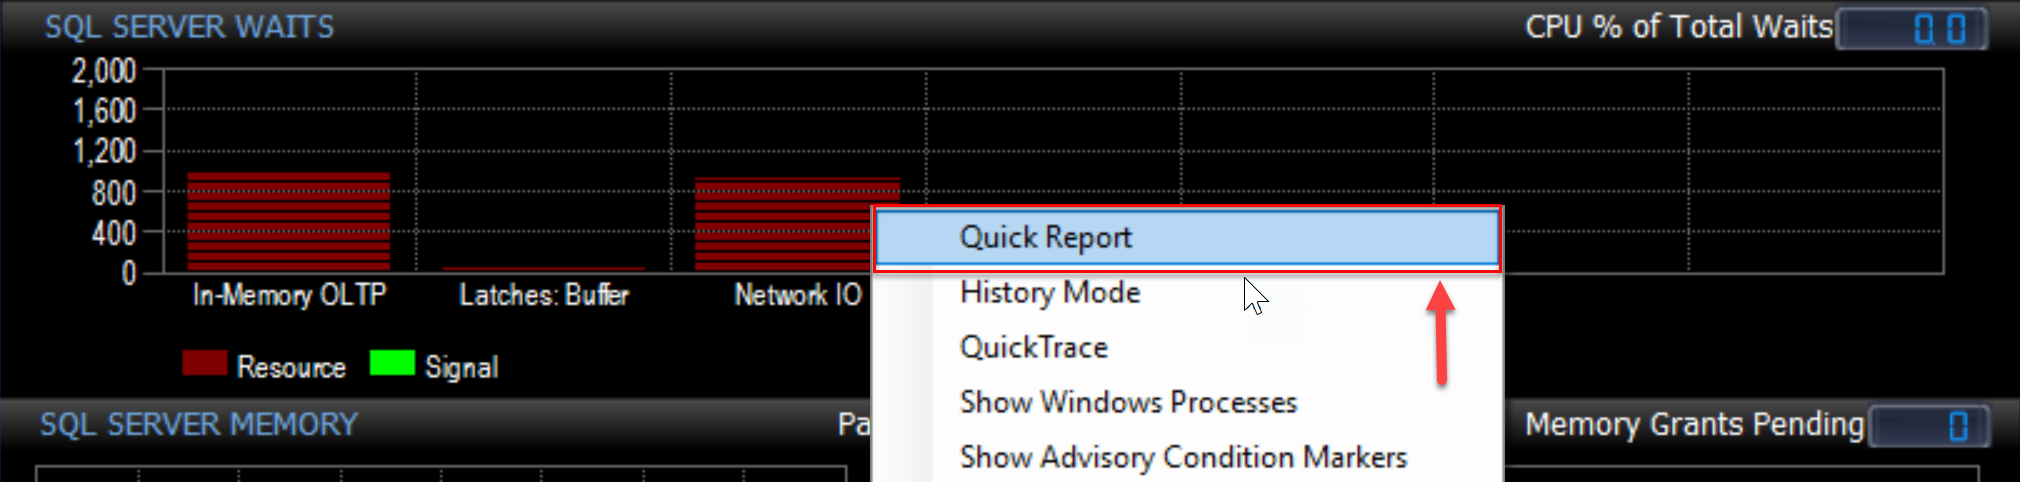 SentryOne Performance Analysis Dashboard select Quick Report in Sample mode